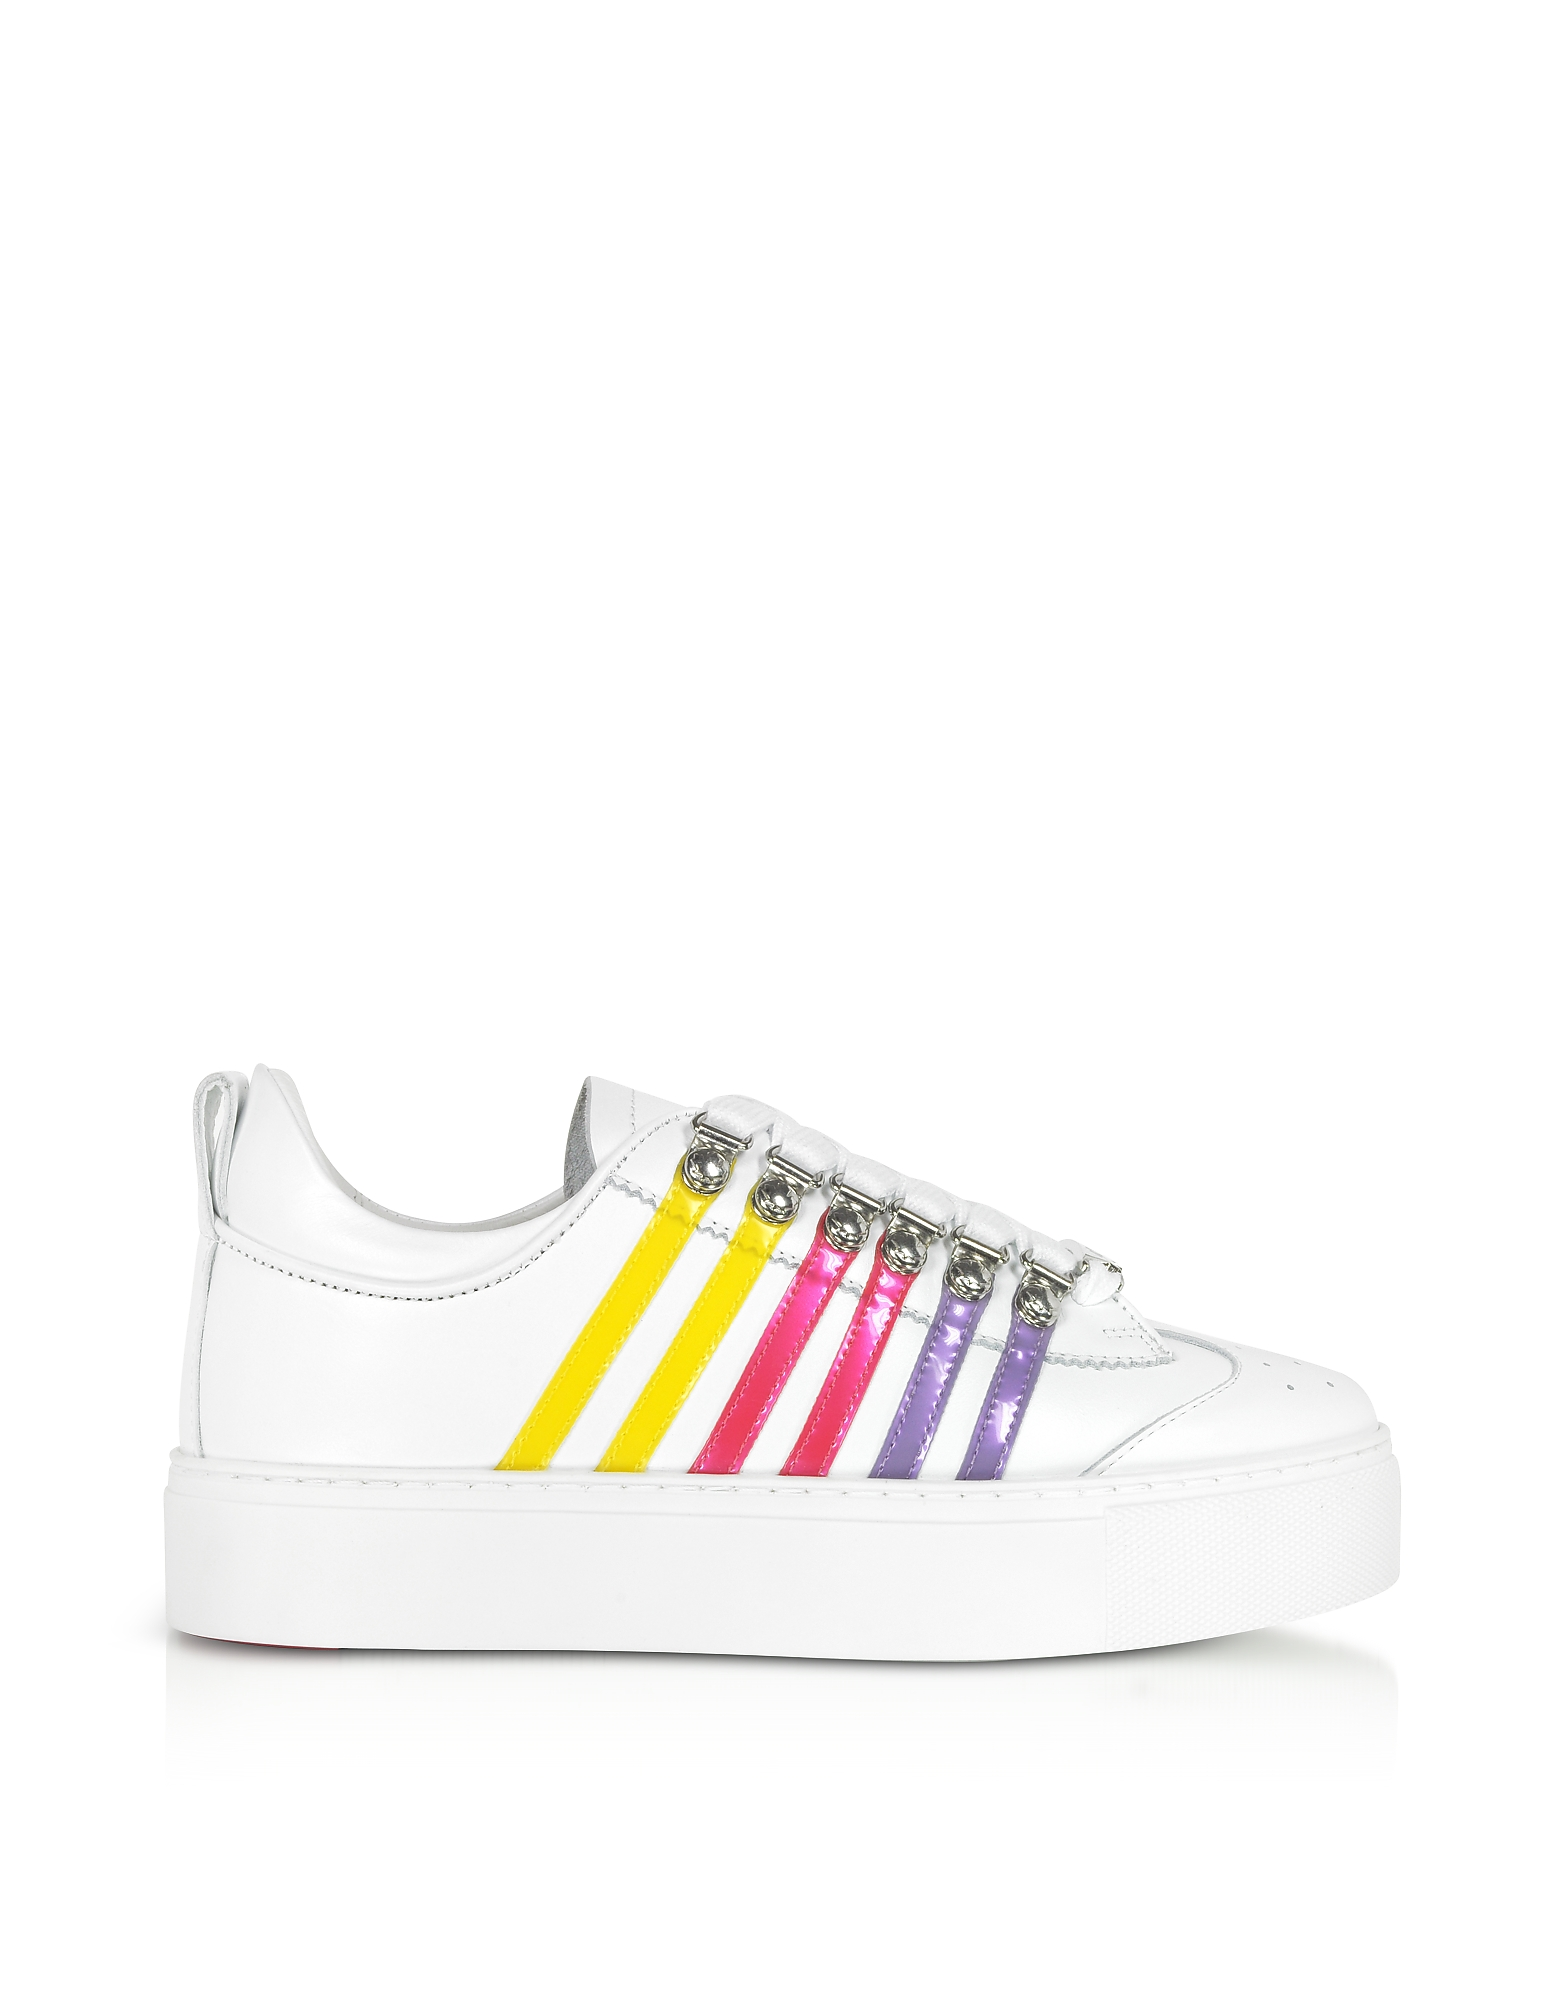 DSquared2 Designer Shoes, Leather Flatform Women's Sneakers